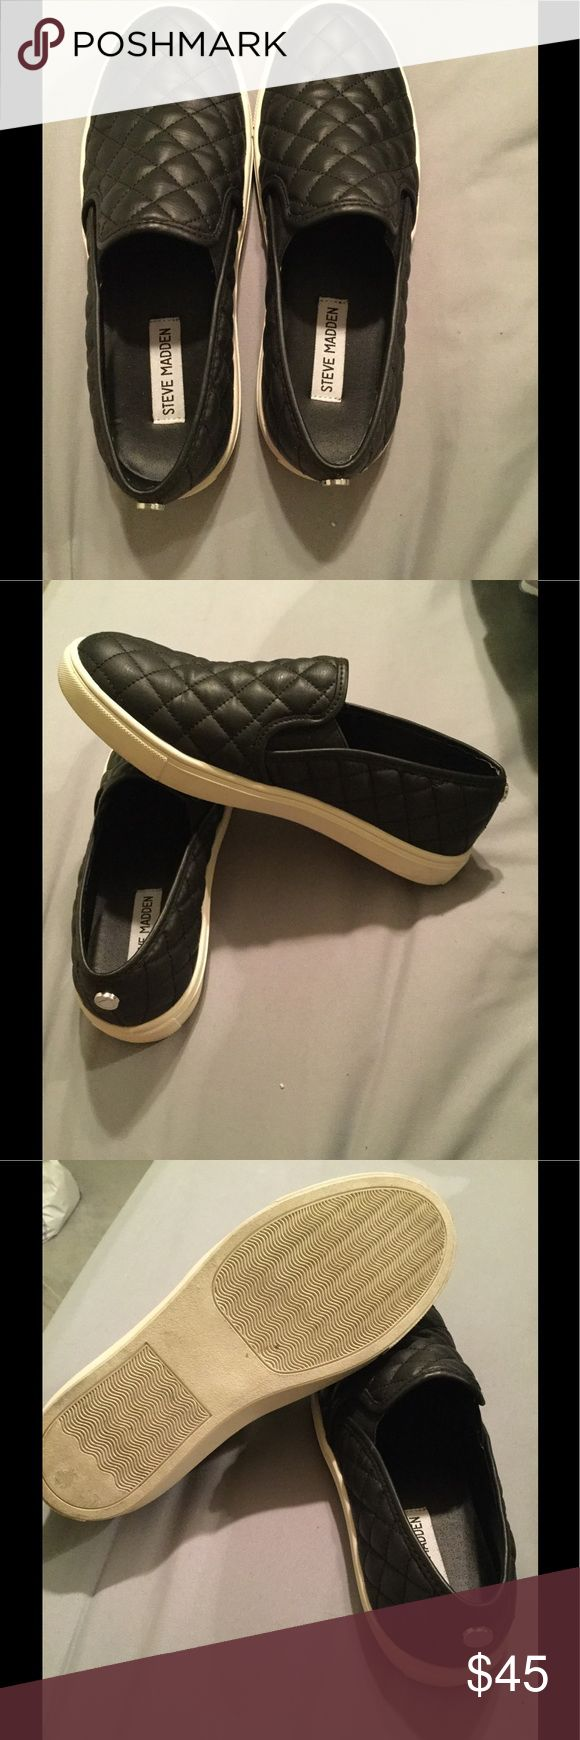 Steve Madden Slip Ons These are practically brand new. Only worn outside 3 times. Authentic. Purchased from the Steve Madden store. These are a must have in your wardrobe. Super comfy. Steve Madden Shoes Sneakers